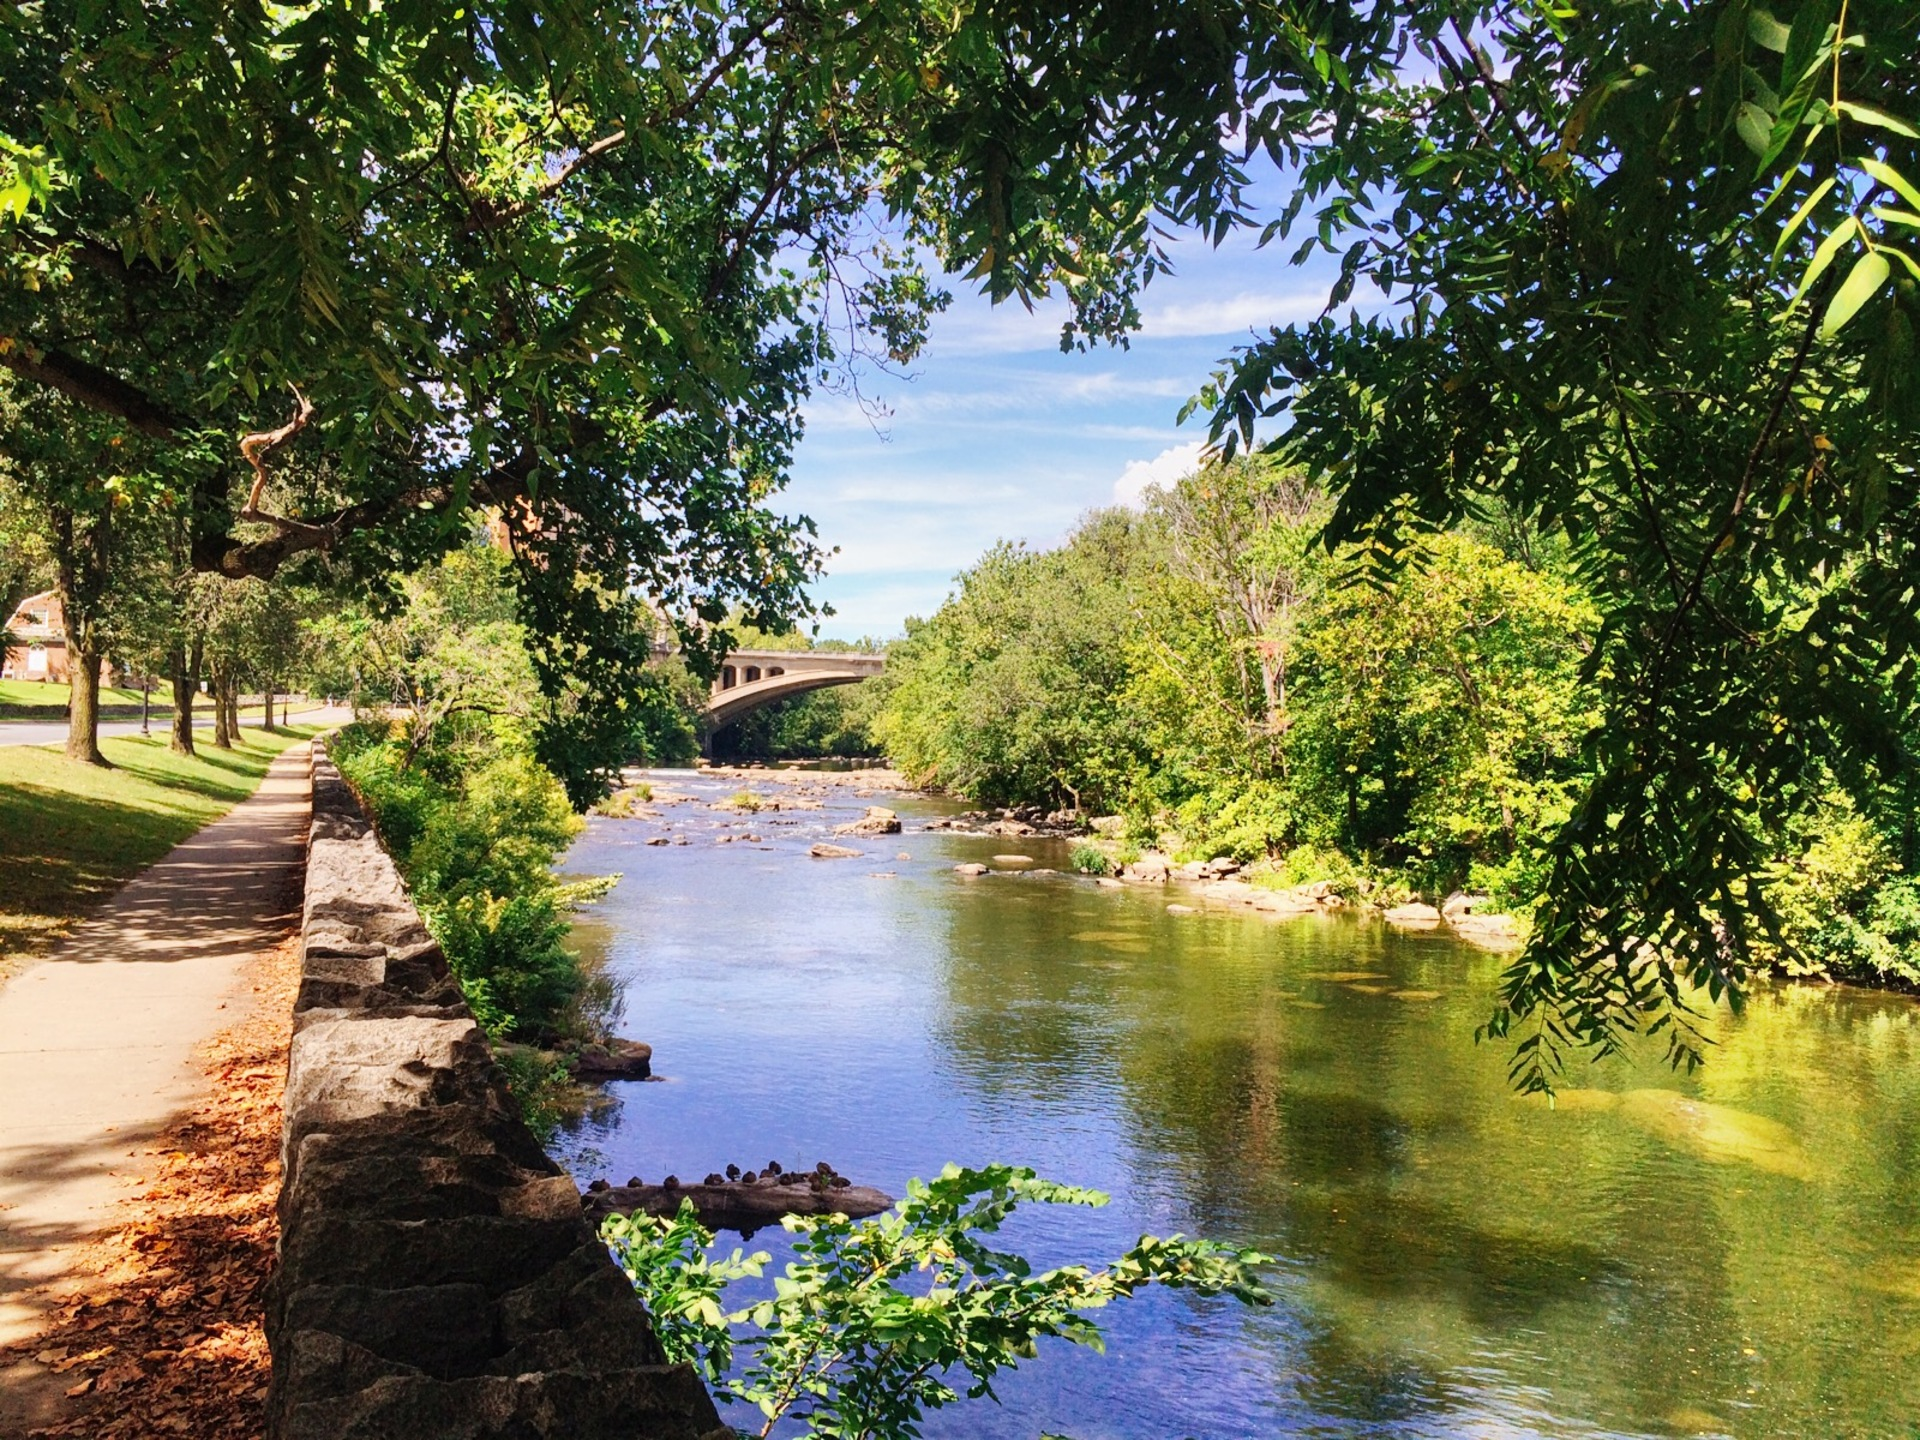 Beautiful river | ihd_capture, forest, nature, outdoors